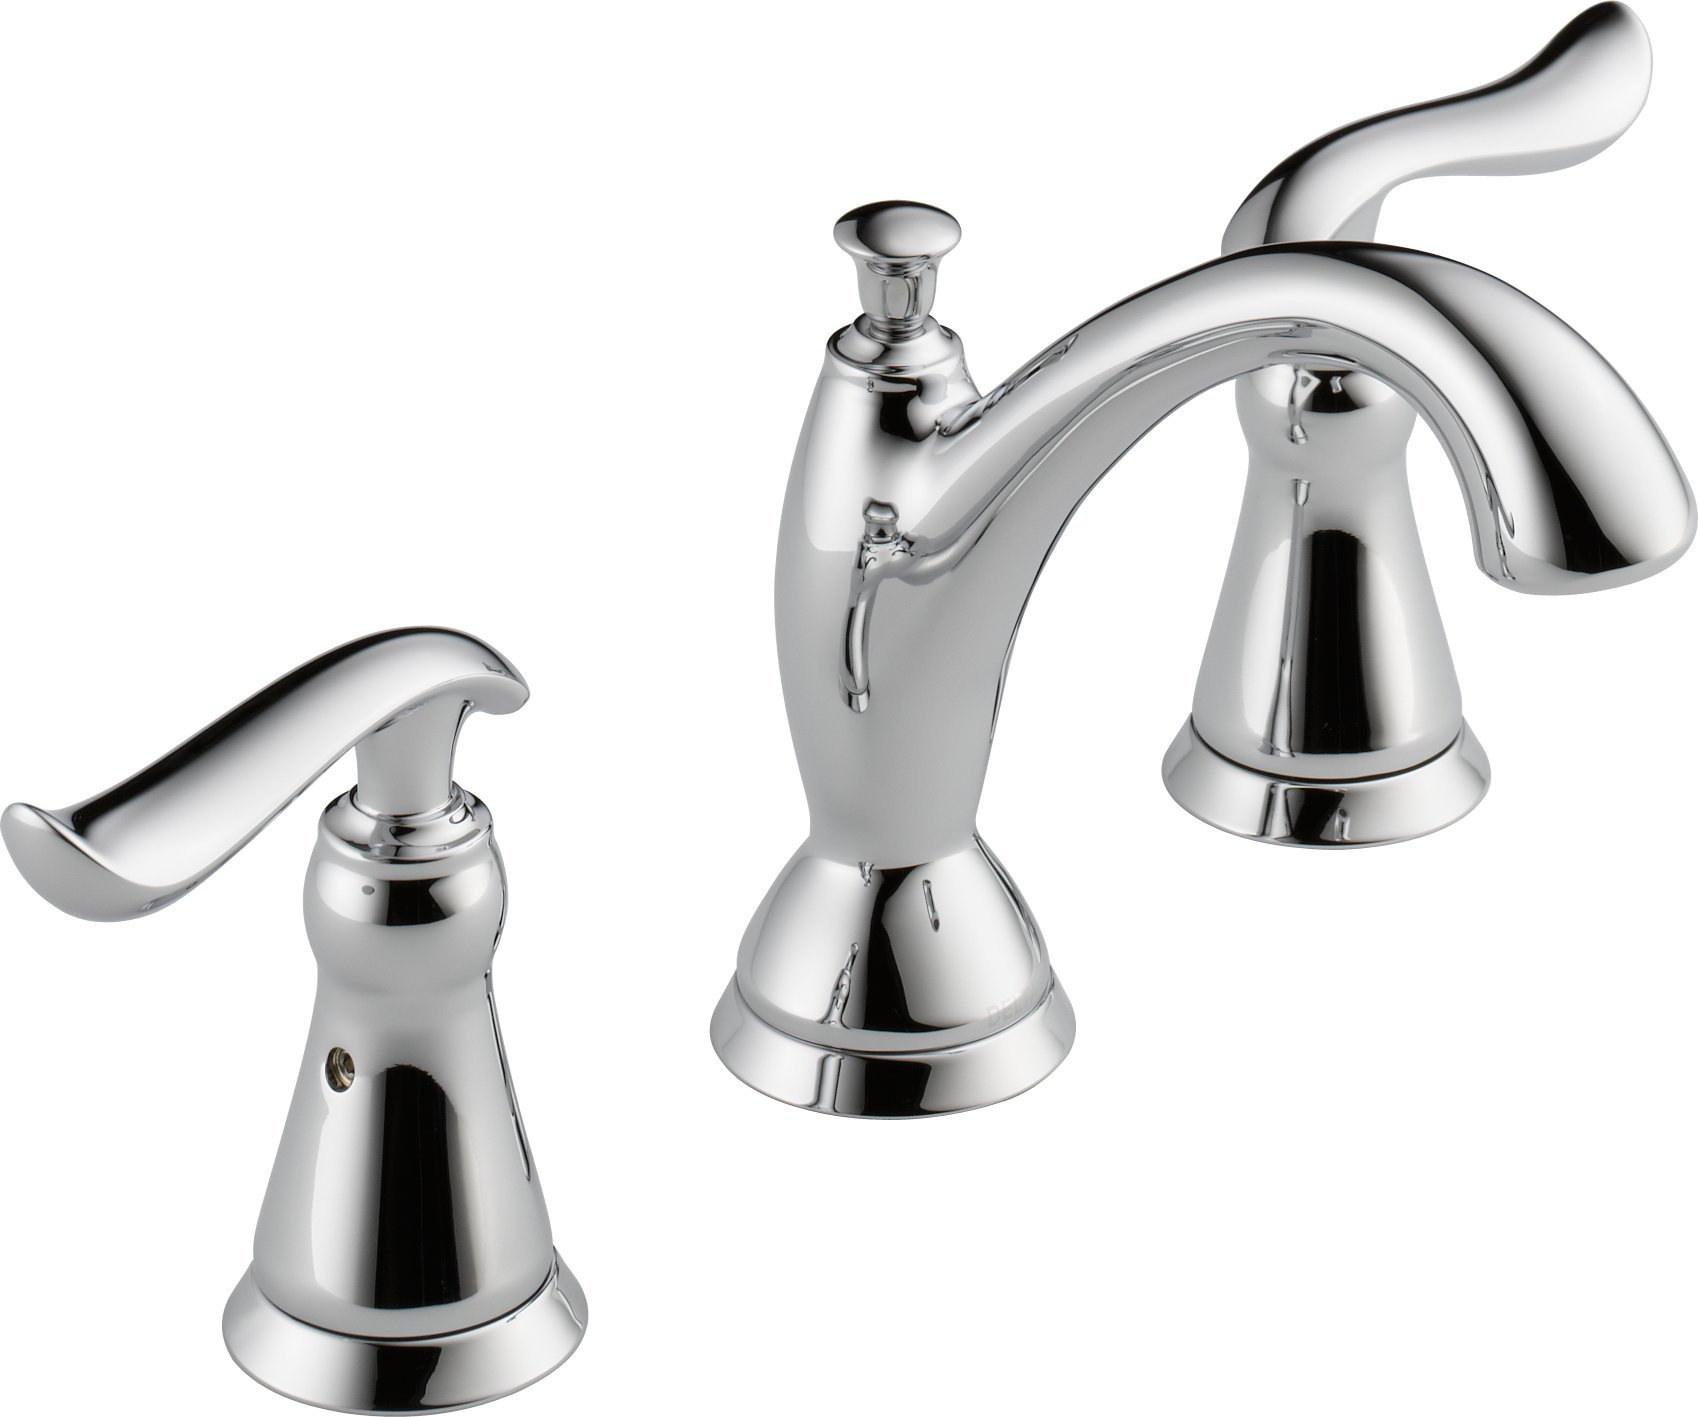 Delta Faucet 3594-MPU-DST Linden Two Handle Widespread Bathroom Faucet, Chrome by DELTA FAUCET